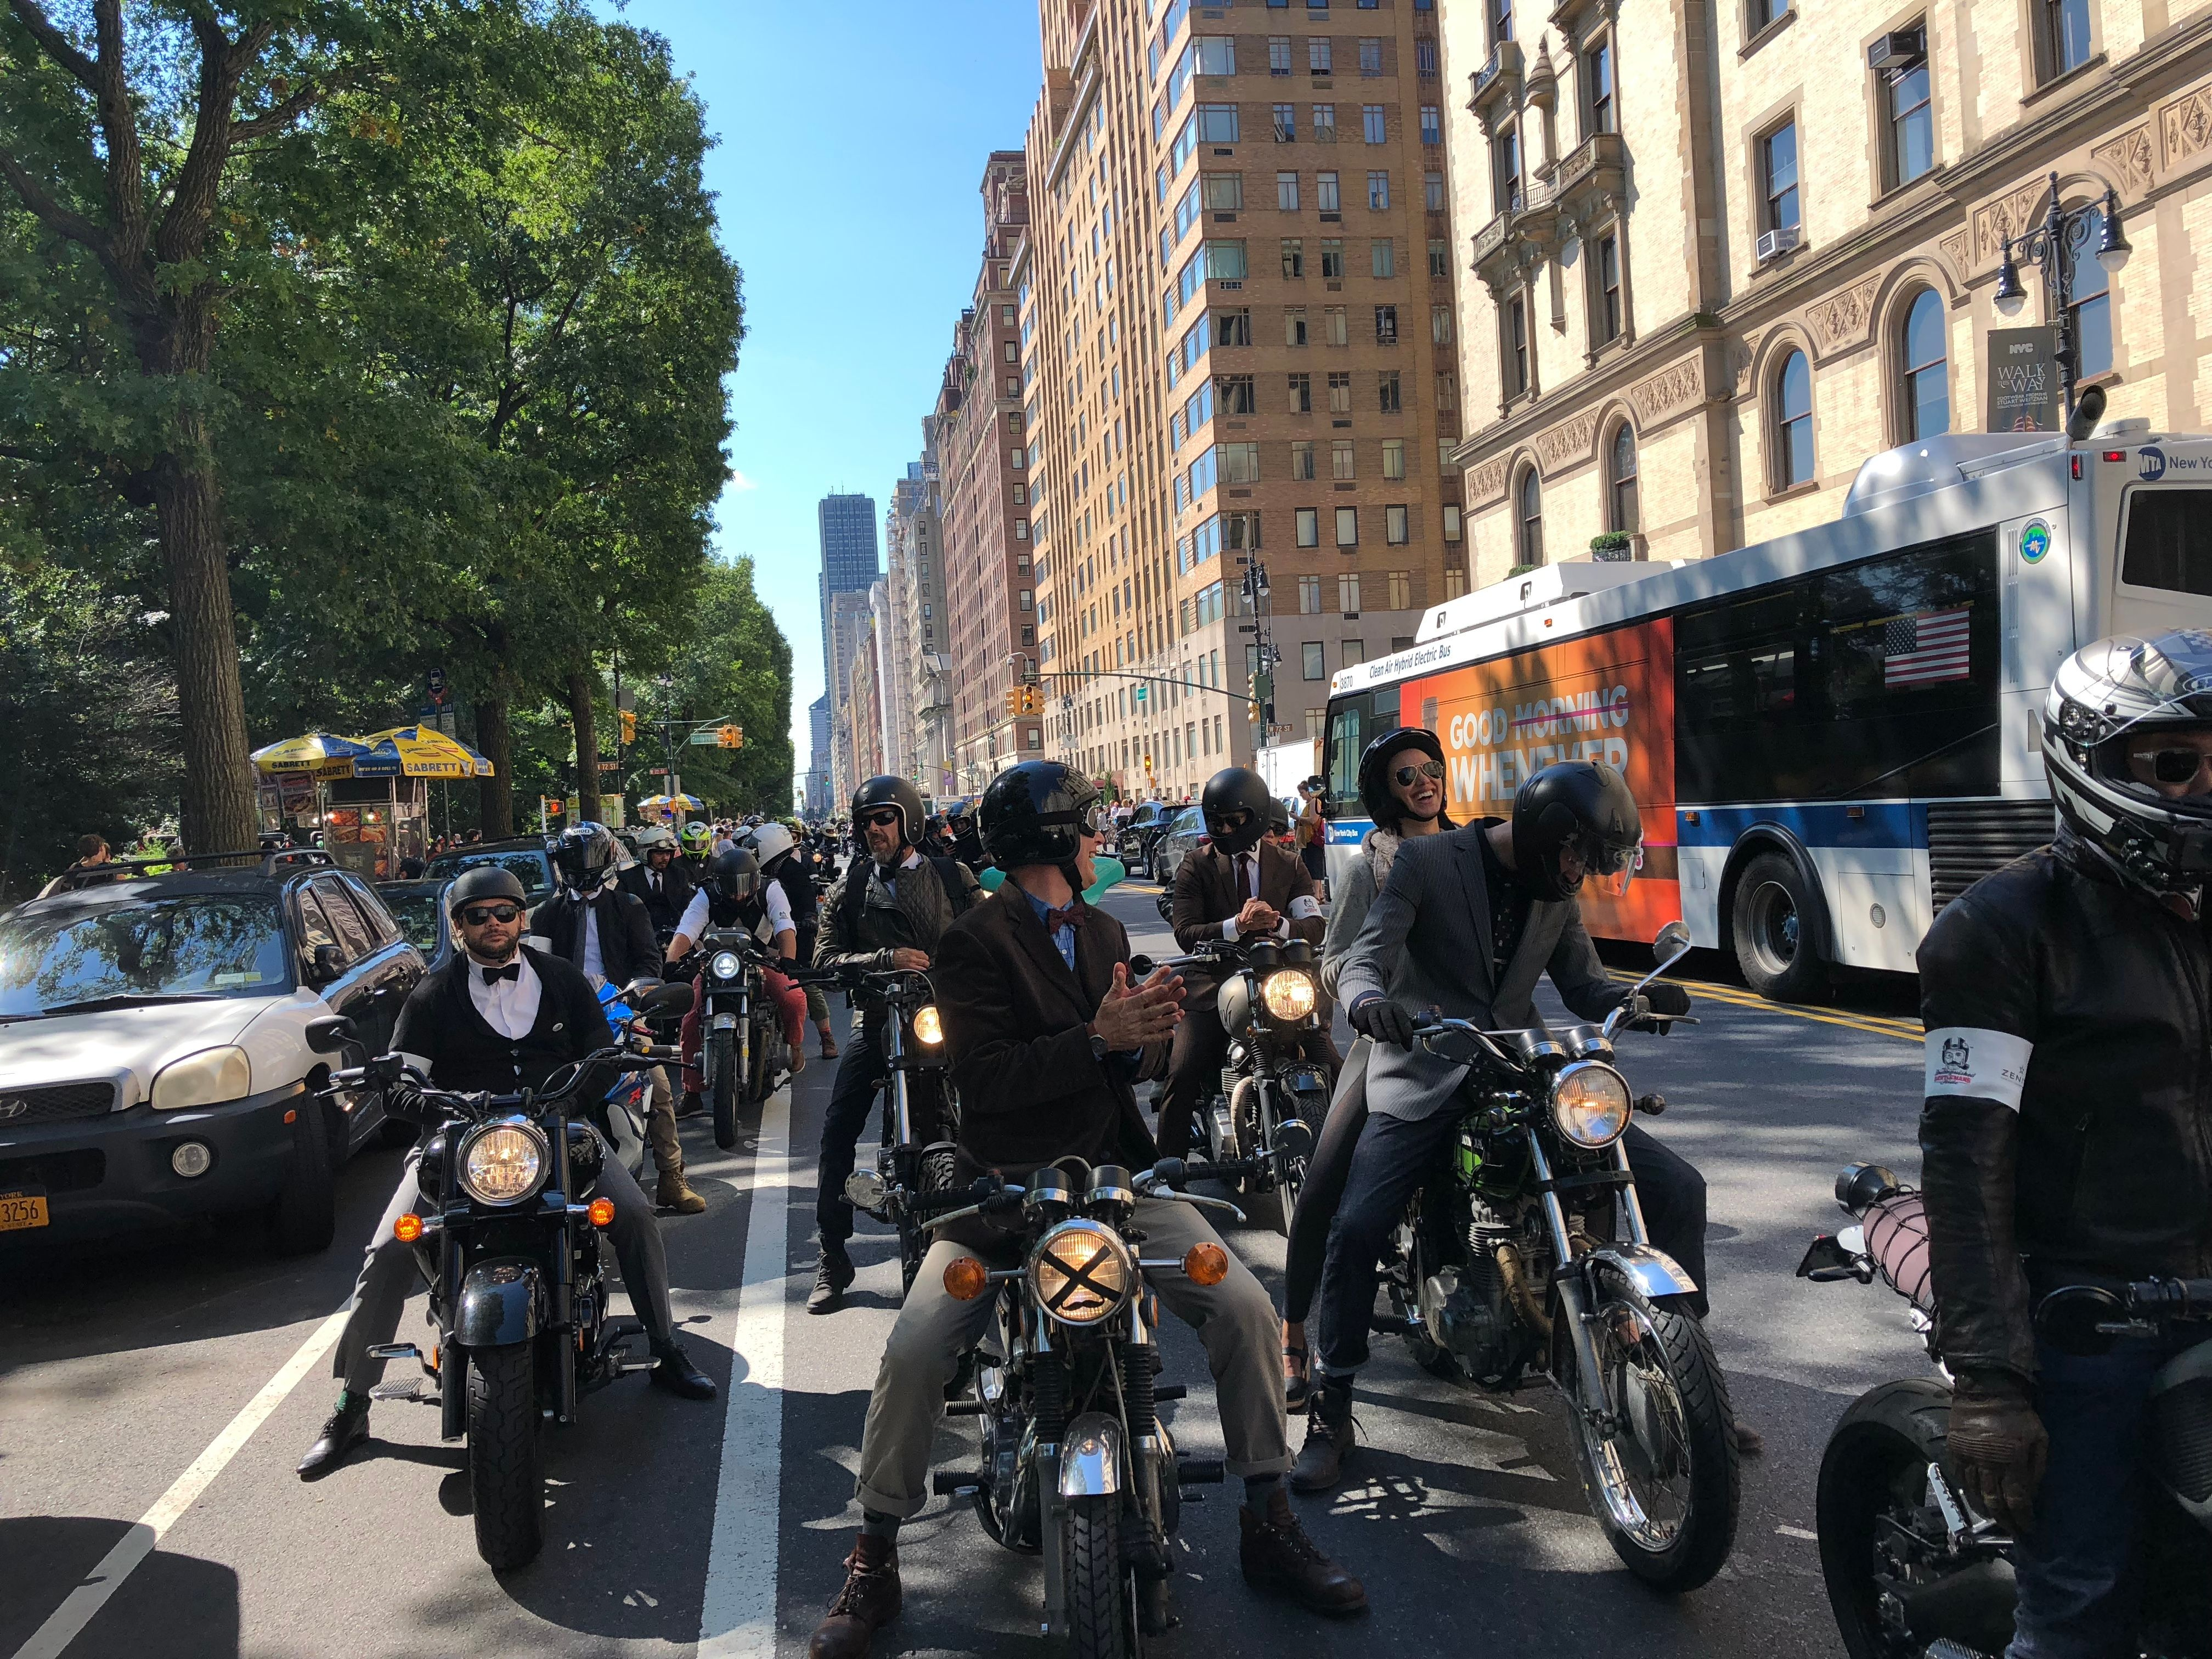 NYC Motorcycle Meetup